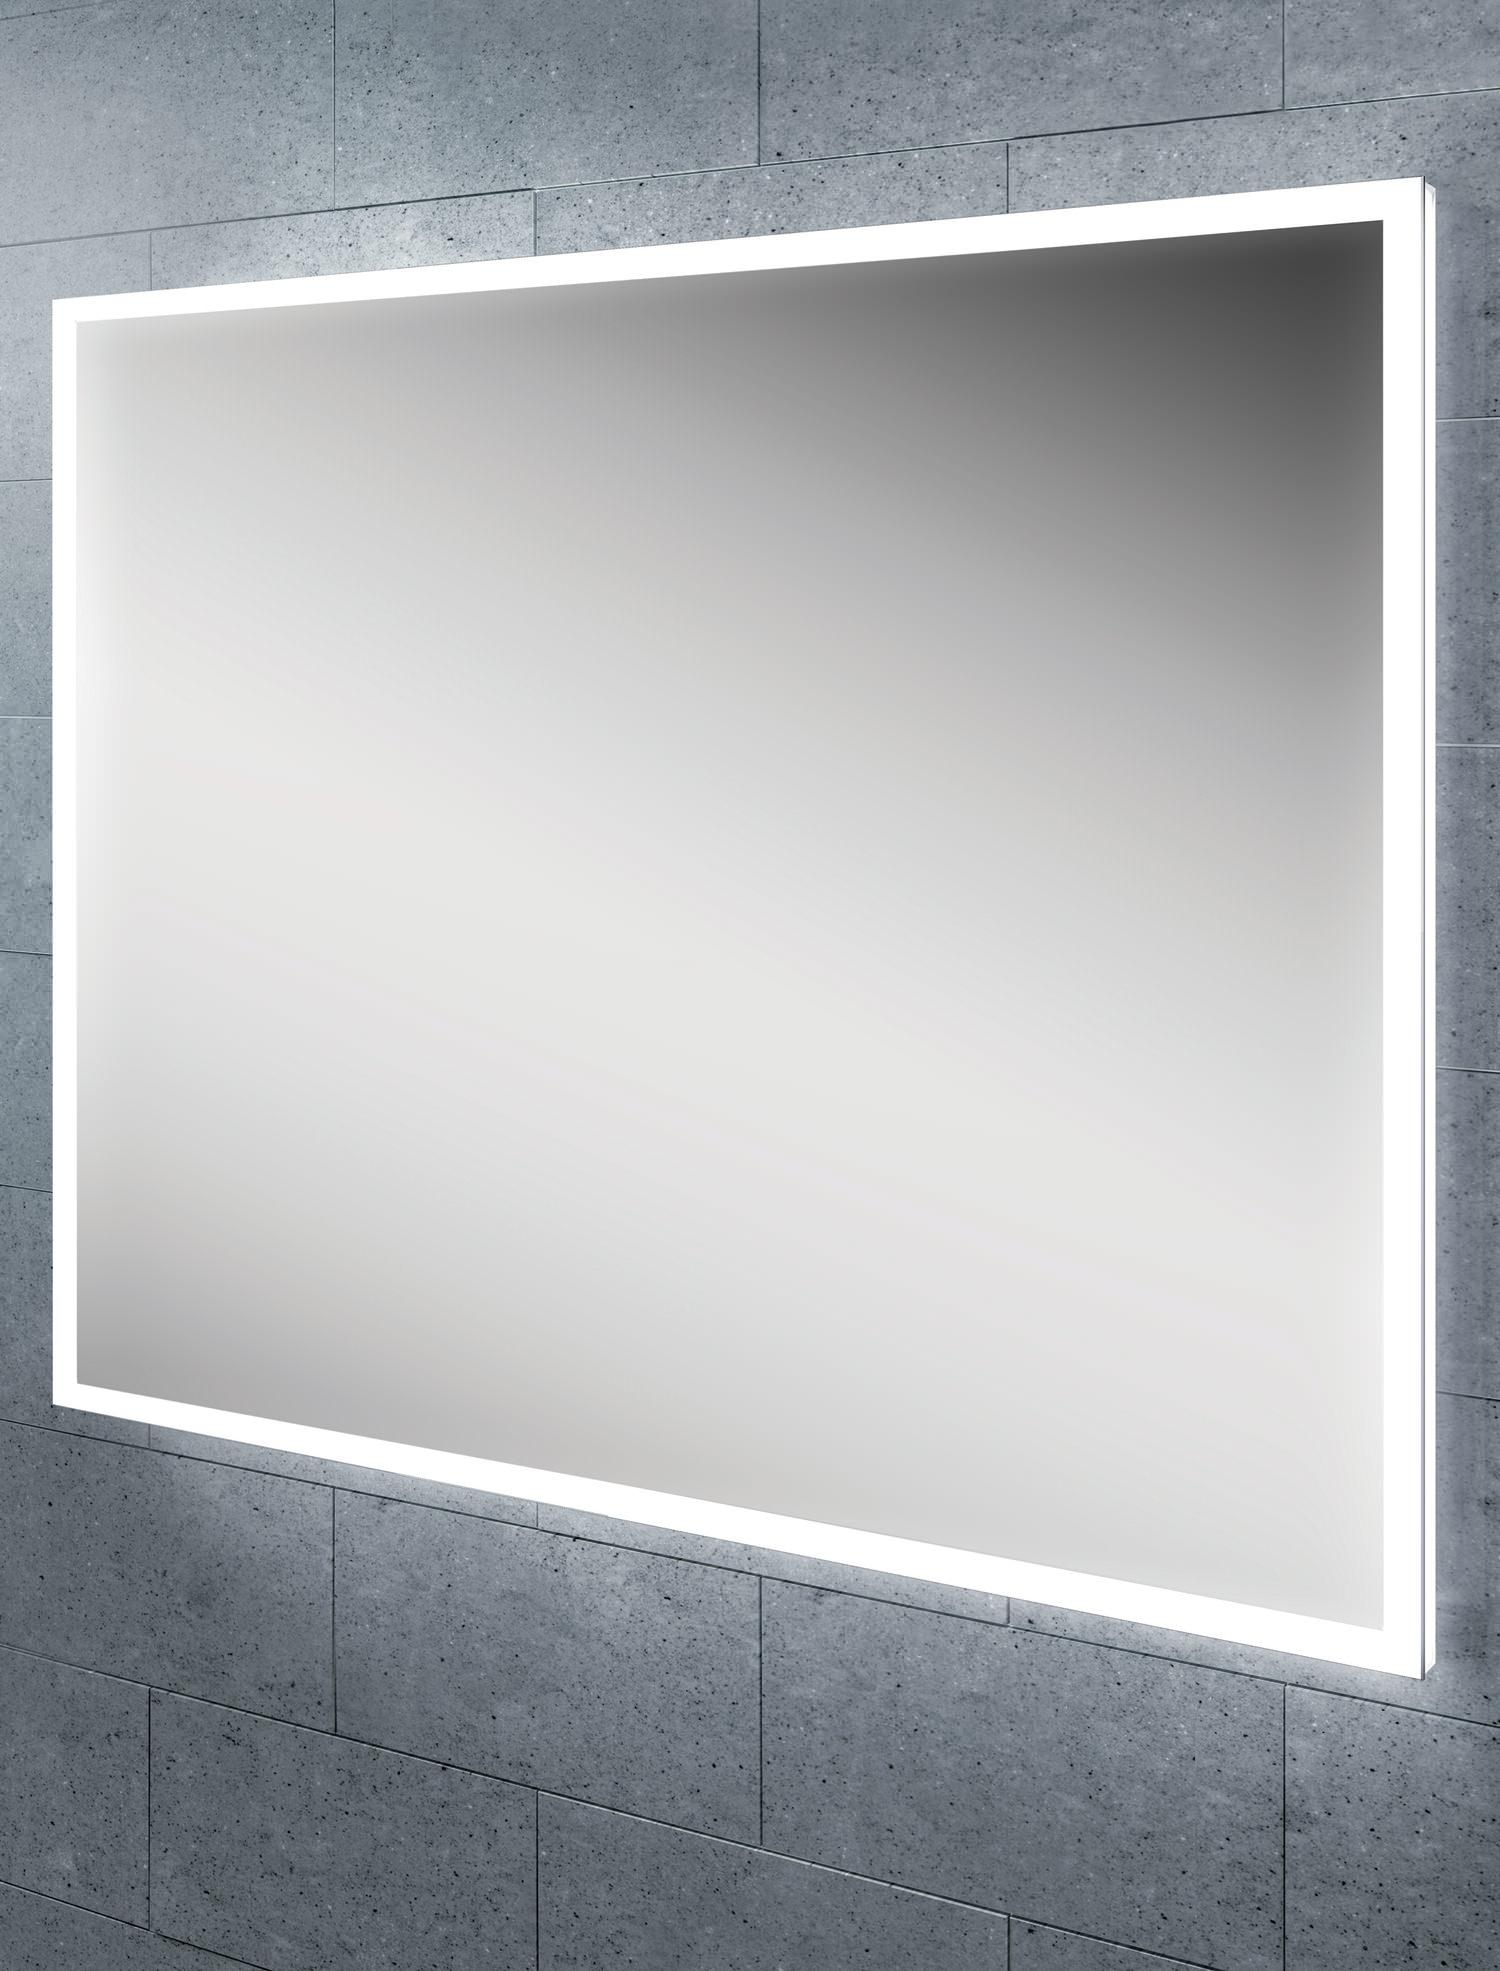 Top 20 Led Illuminated Bathroom Mirrors Mirror Ideas